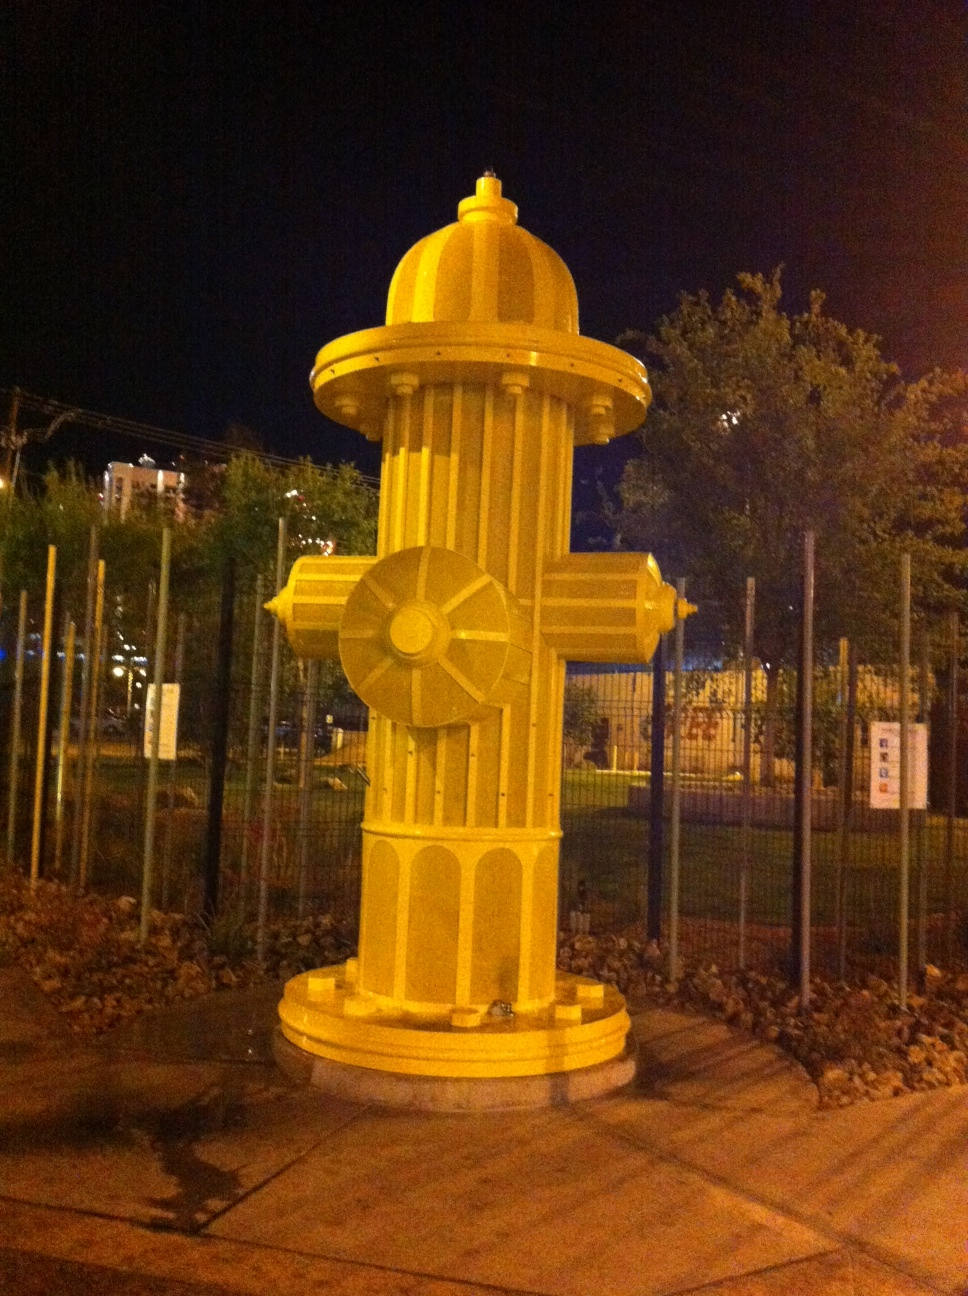 One night we wandered Freemont Street past Container Park and found this oversize fire hydrant. It was the gateway to the neighbourhood dog park. We love fun things like this; too often urban spaces are too minimal, too subtle and just plain too serious.